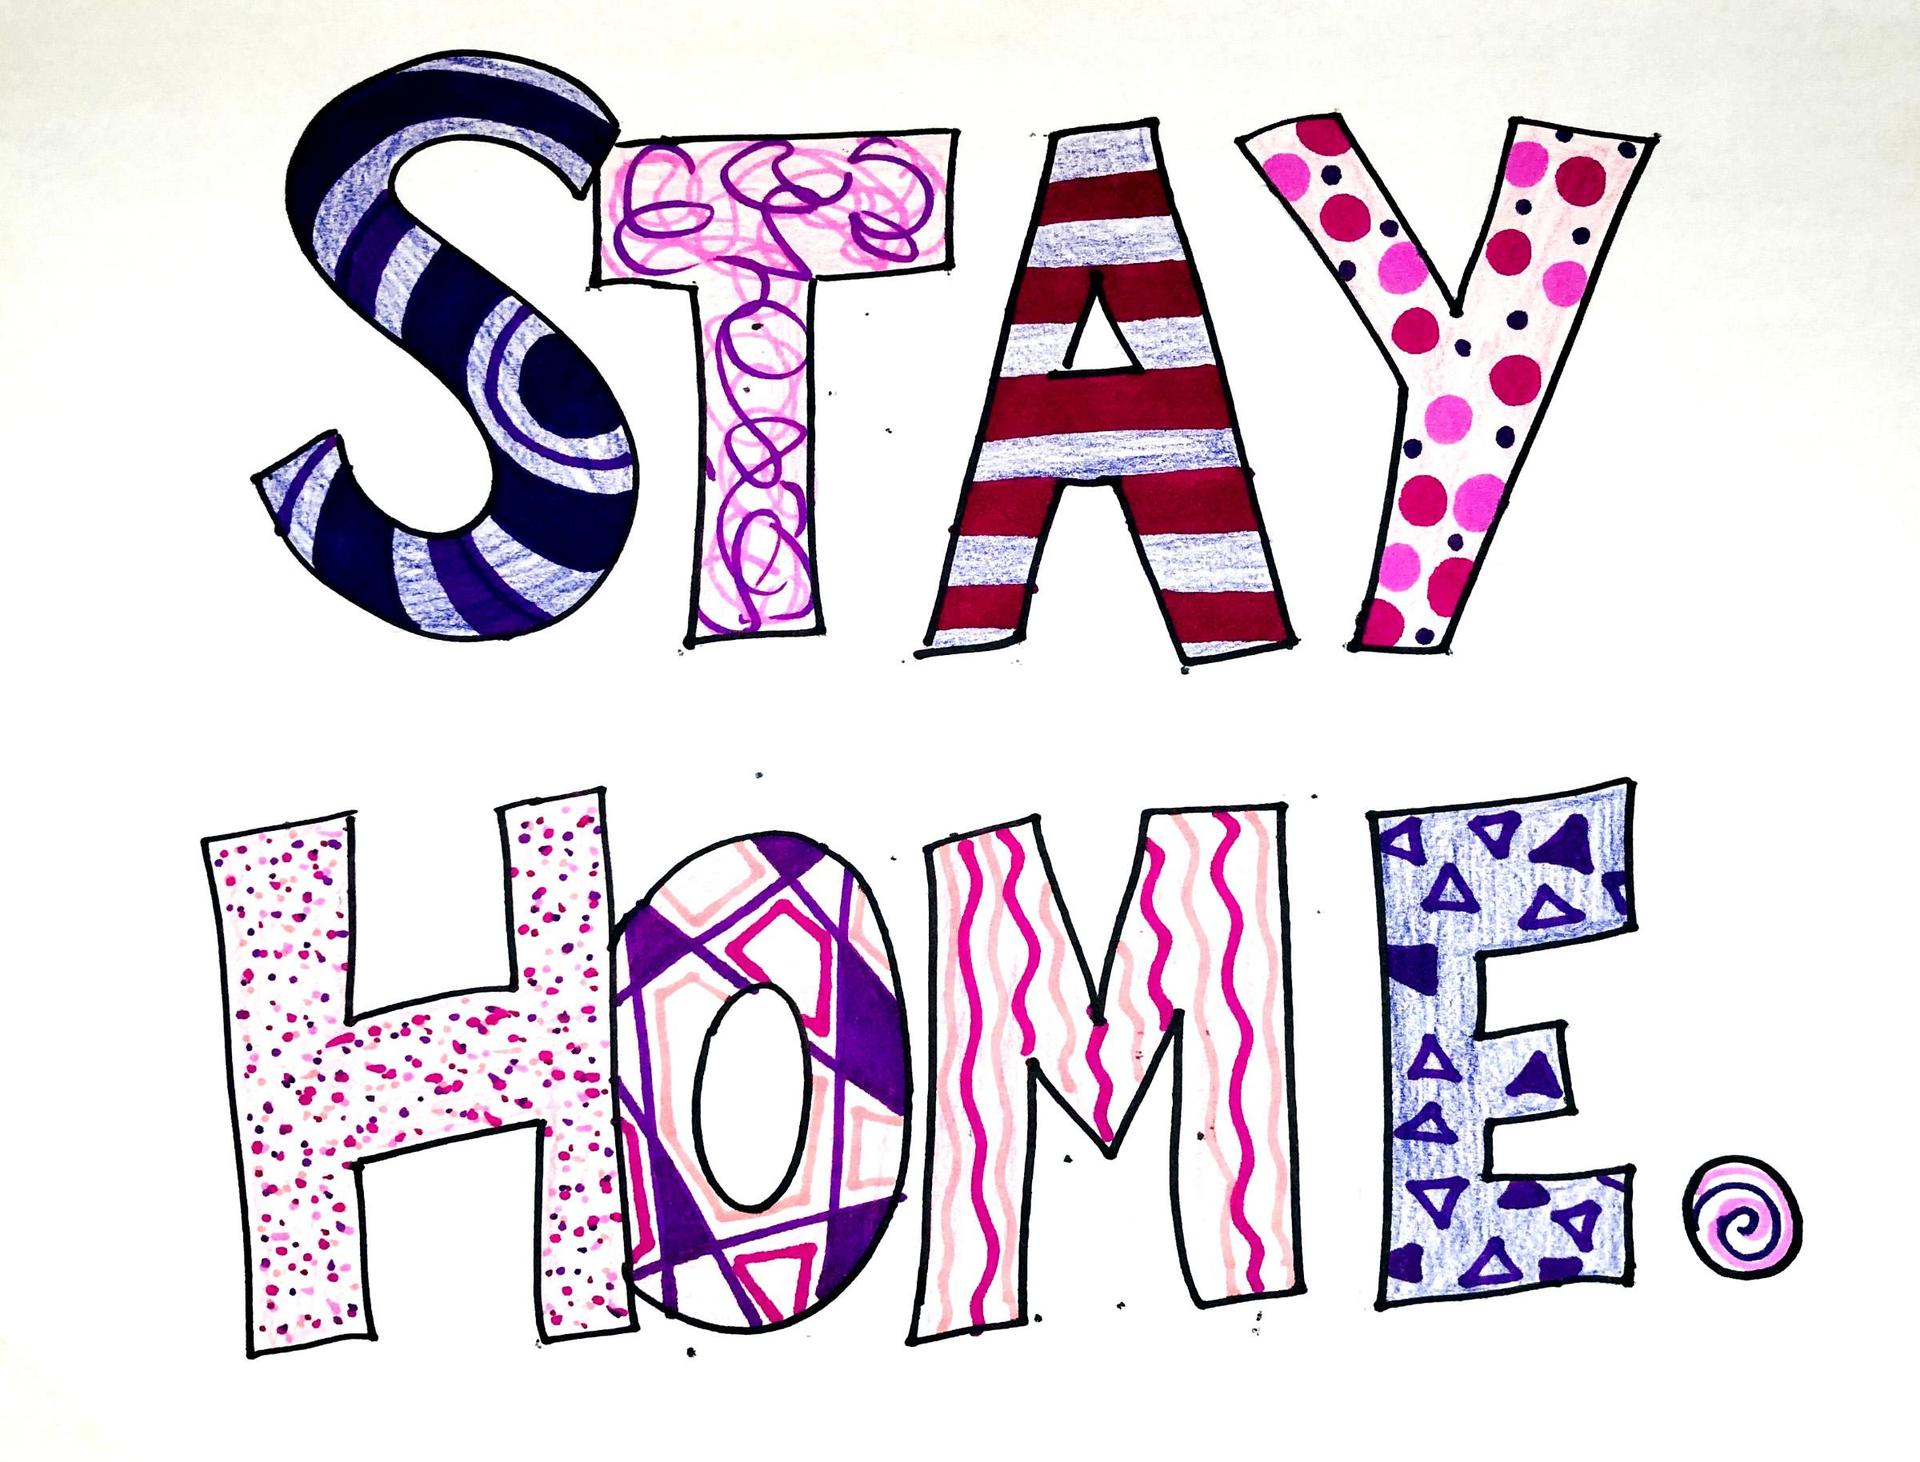 The words 'stay home' filled in with various shapes, designs, and colors